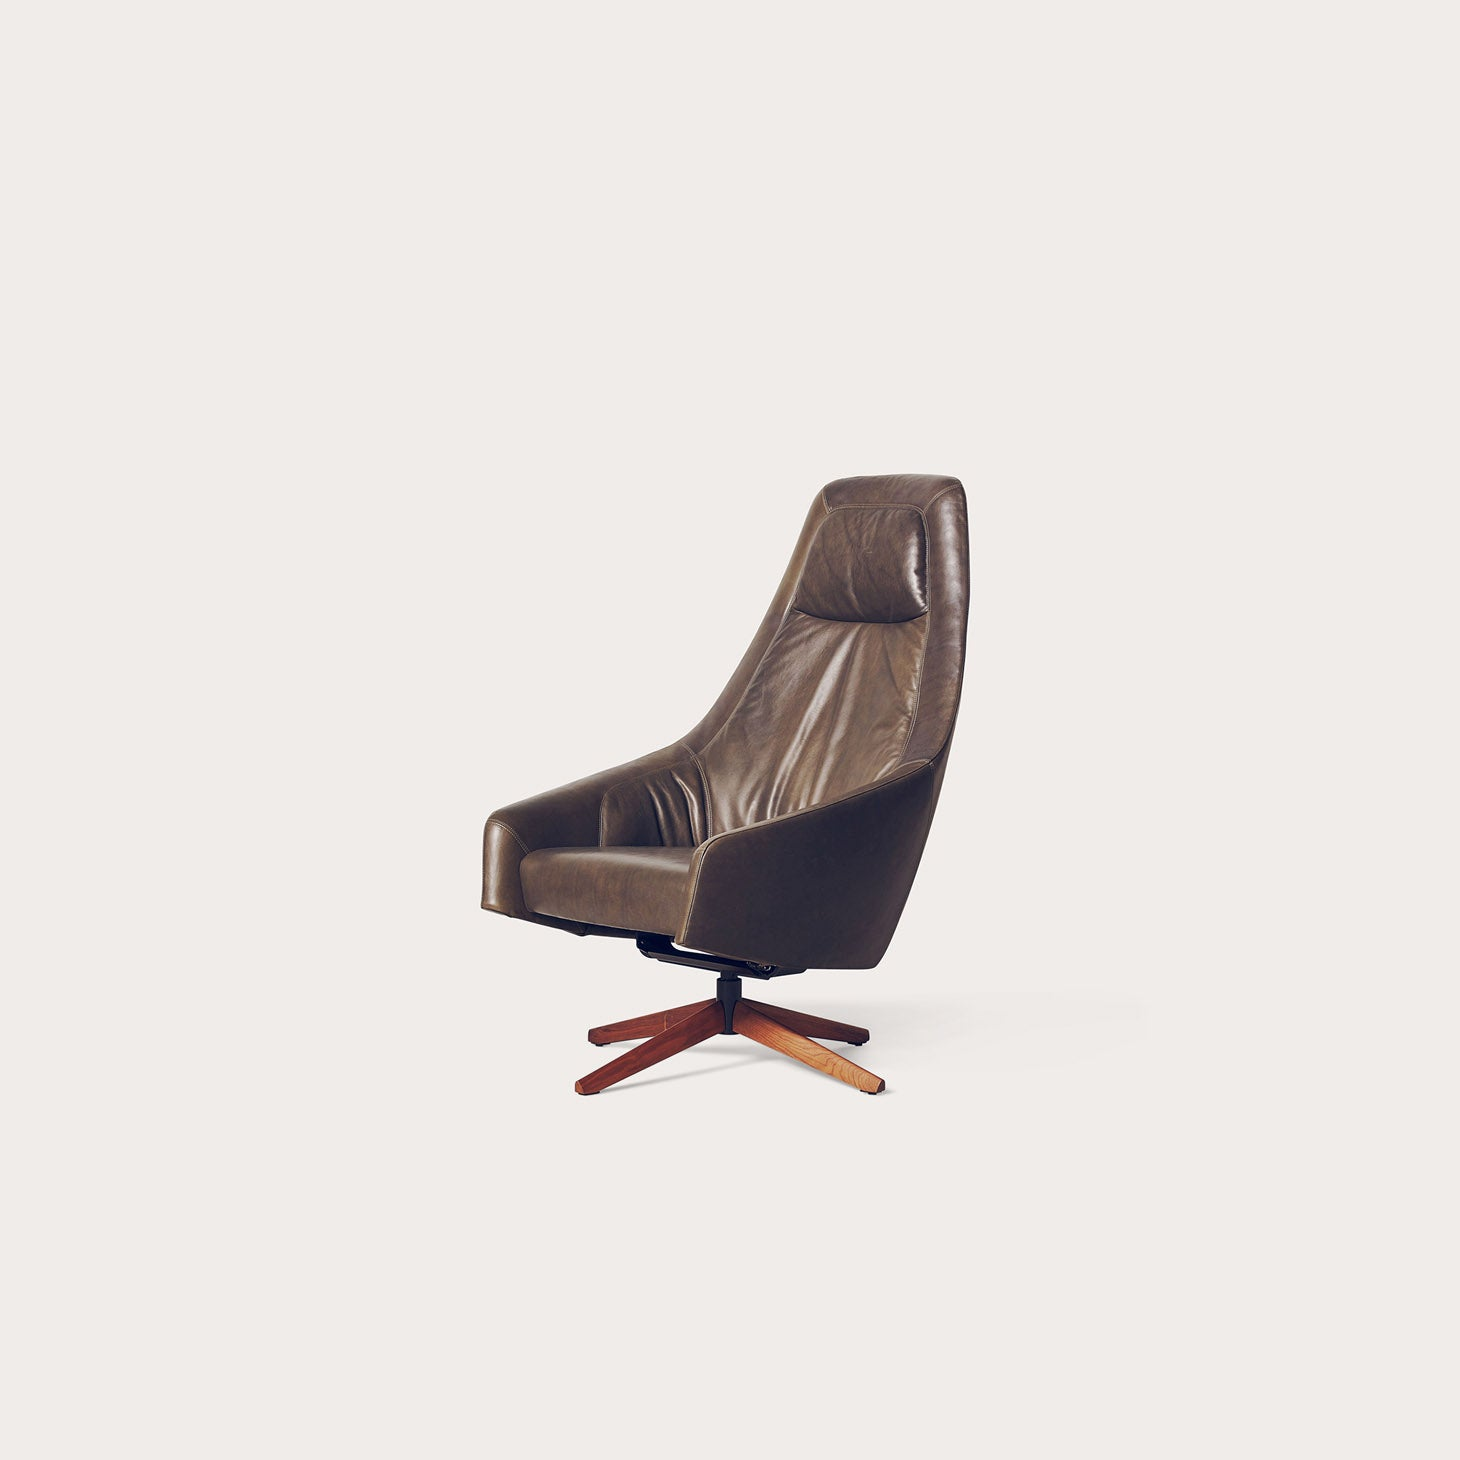 Puk M Seating Simon Pengelly Designer Furniture Sku: 134-240-10068